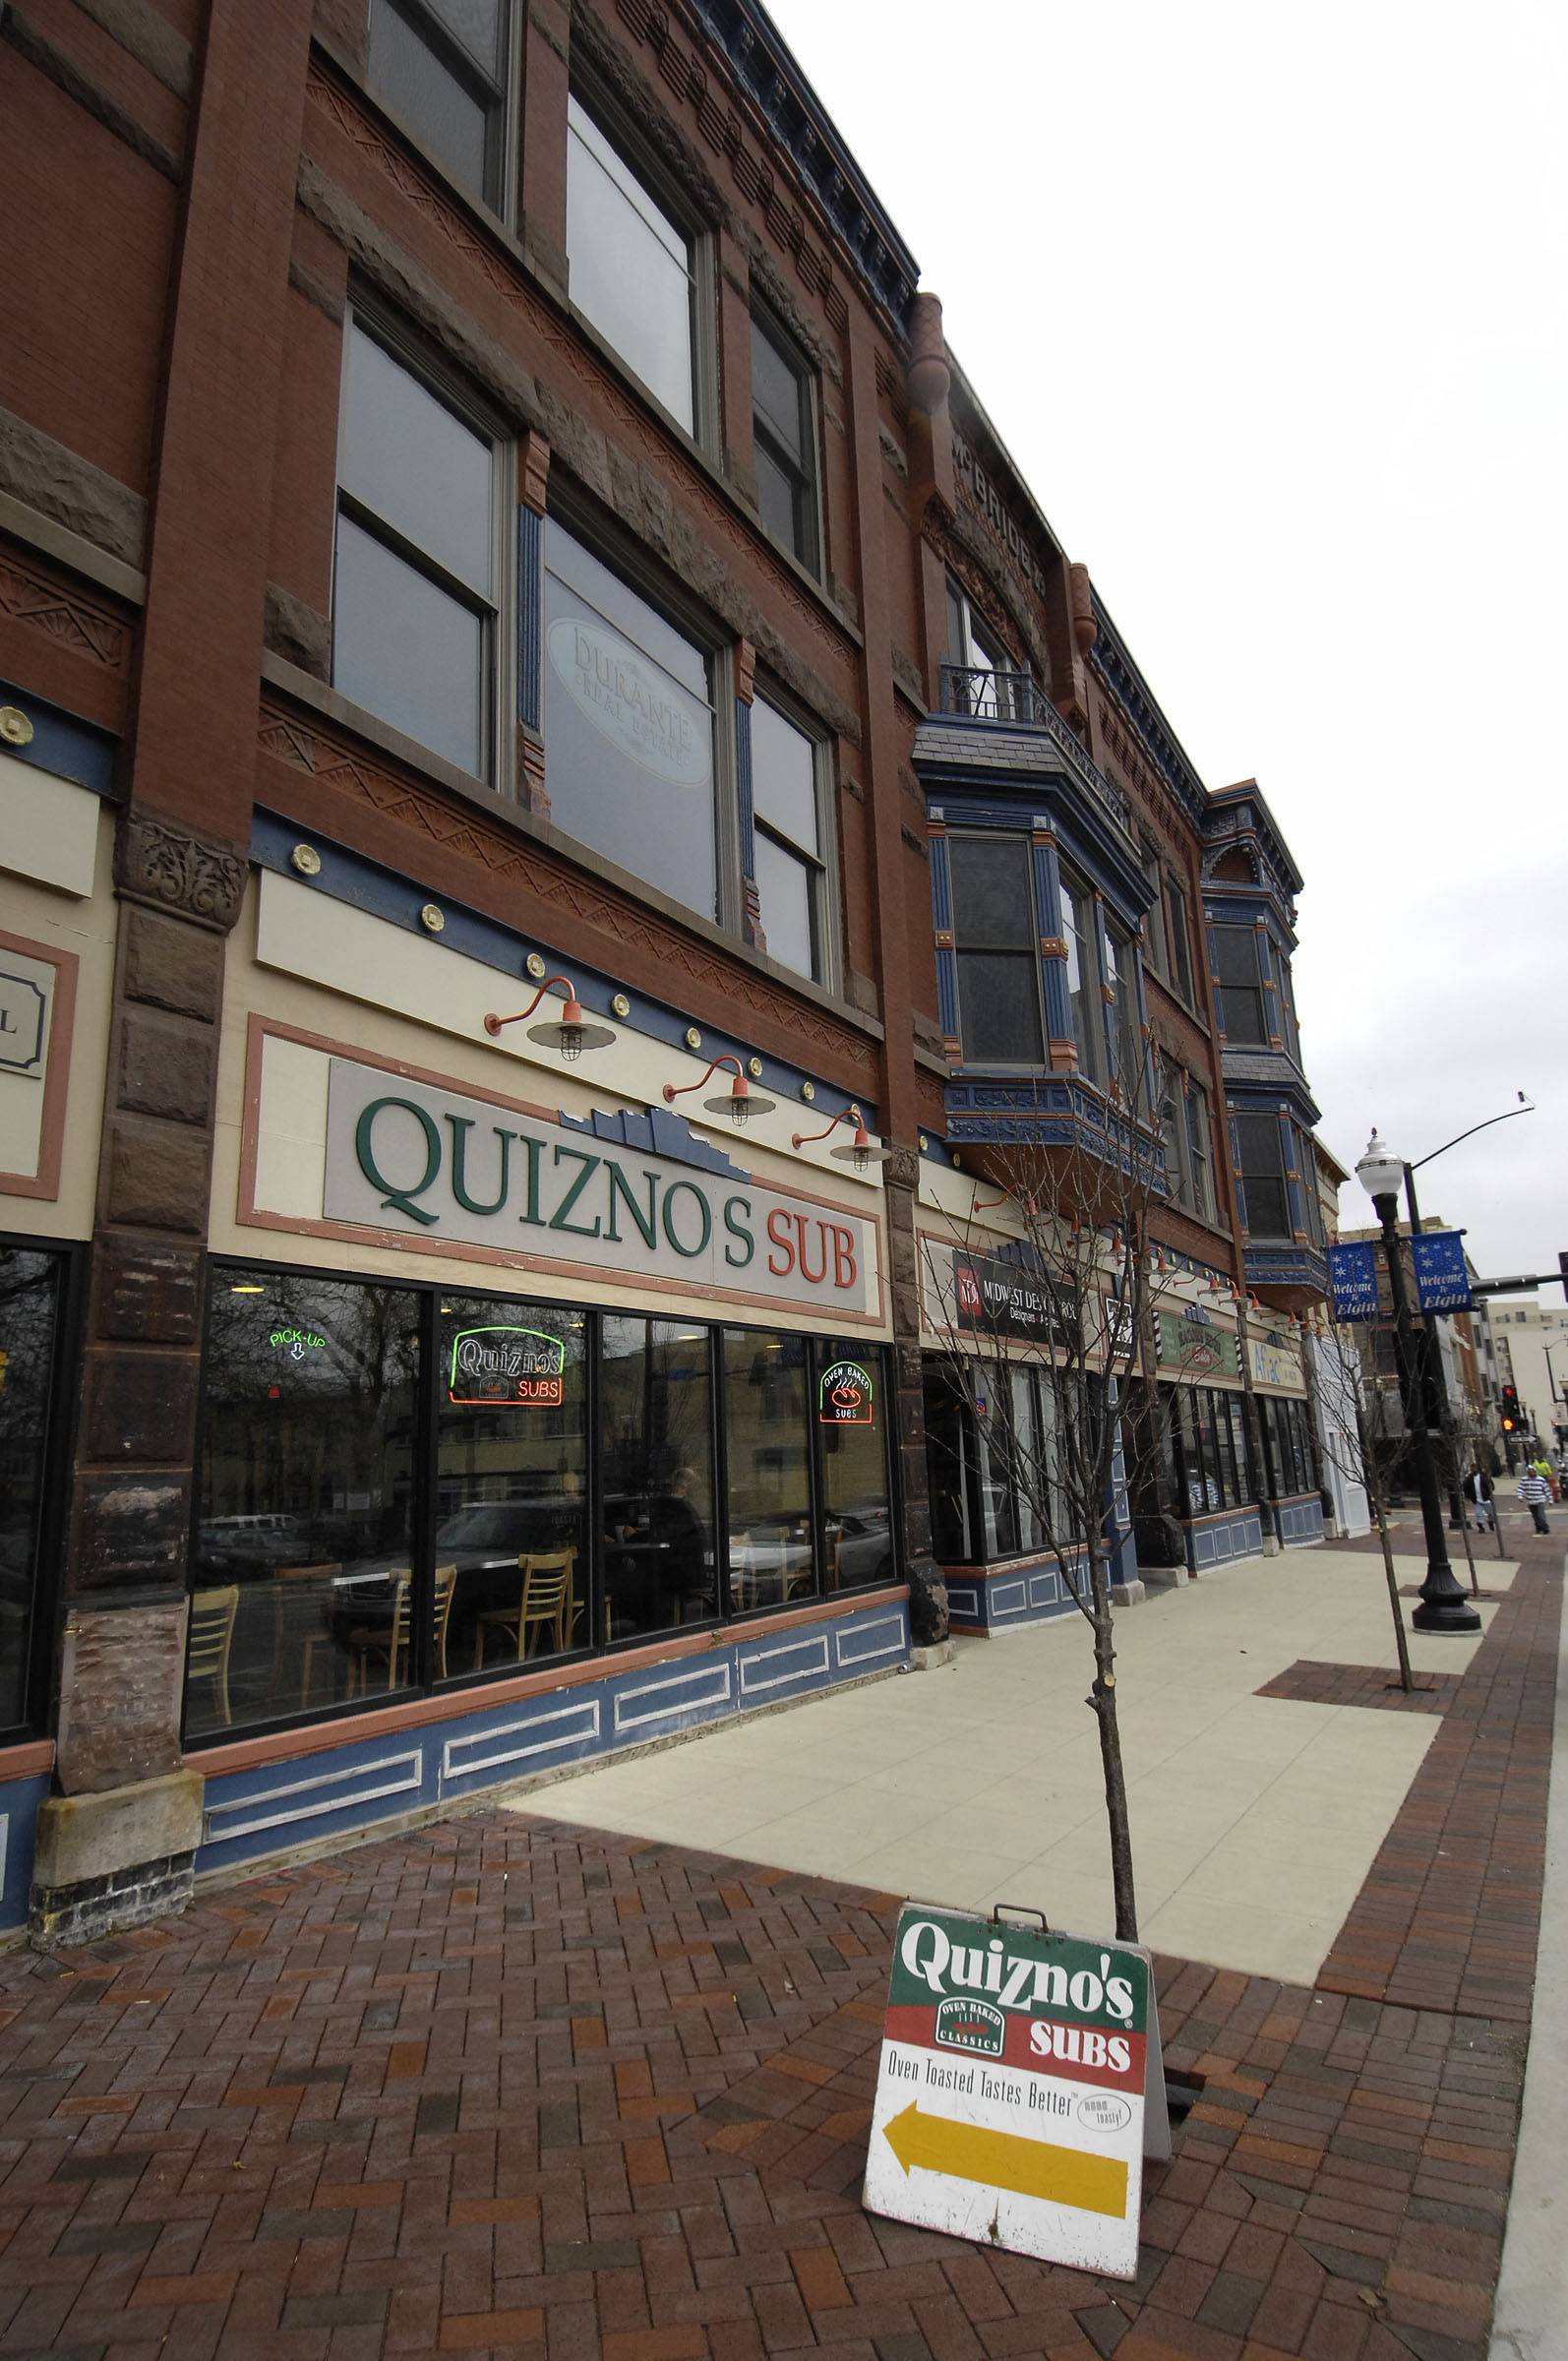 Quiznos Corp., the Denver-based toasted-sandwich chain that entered bankruptcy in March, received court approval of a recovery plan that cuts debt by more than $400 million.